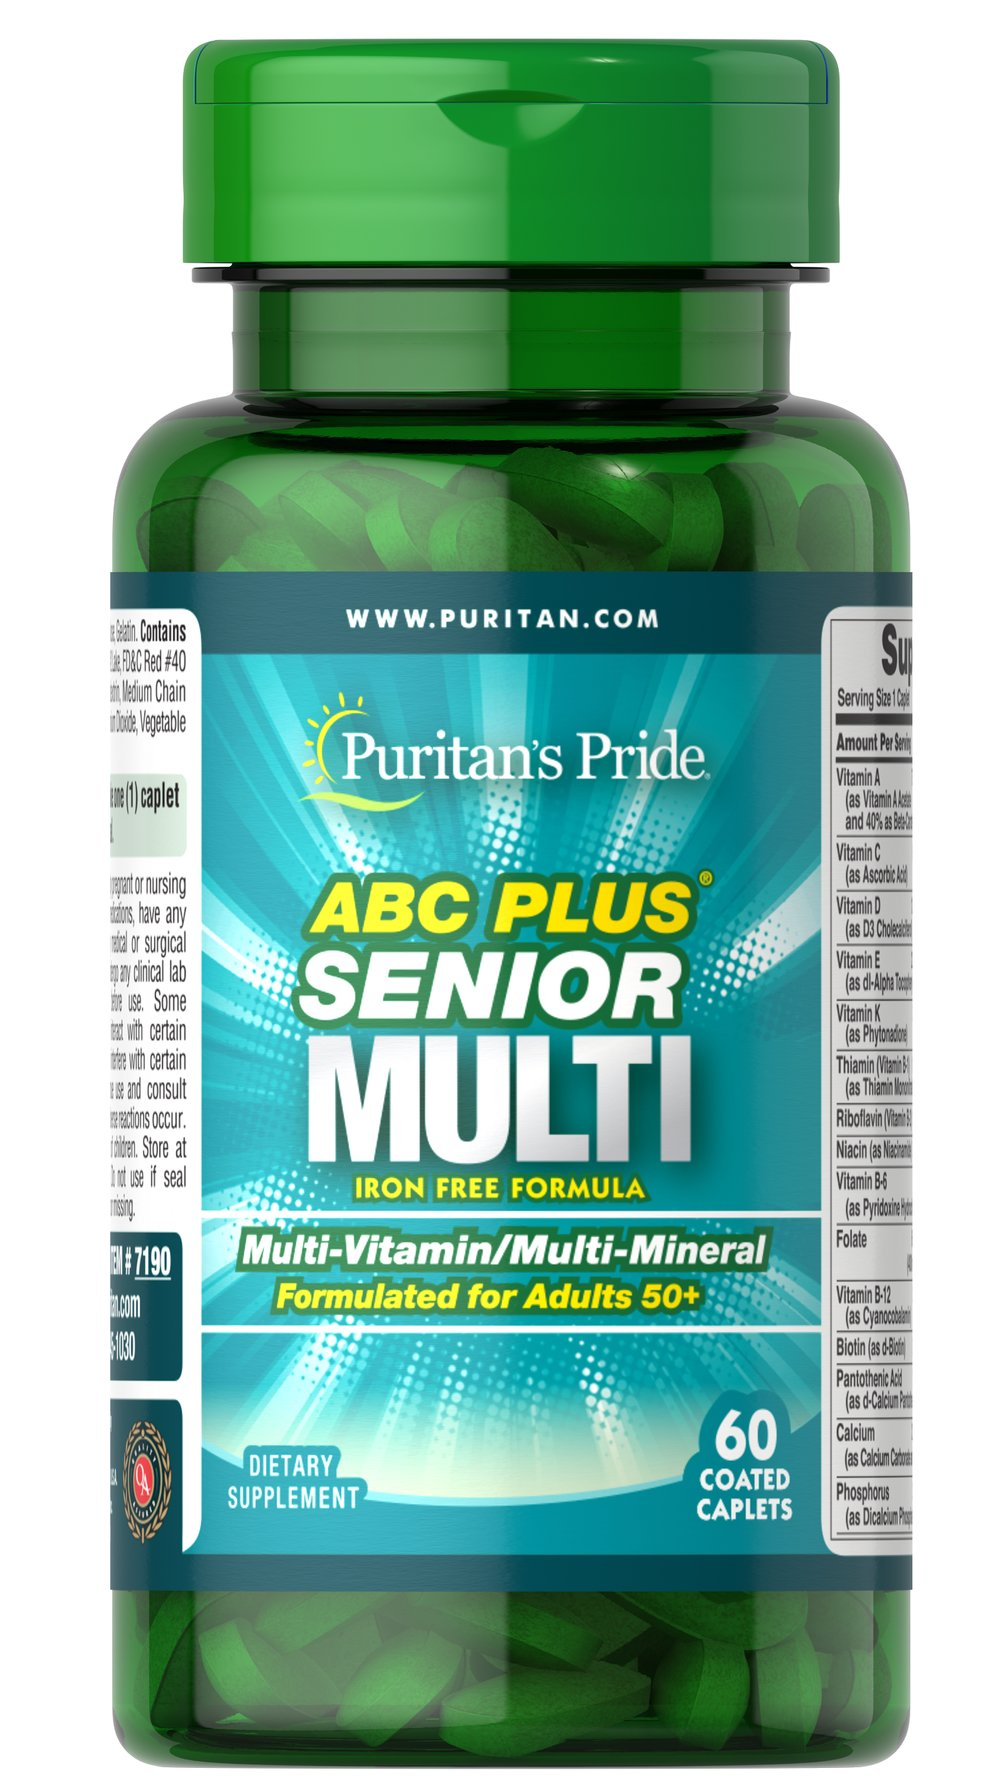 ABC Plus® Senior Multivitamin Multi-Mineral Formula <p>A special high-quality blend of vitamins and minerals formulated exclusively for adults 50 and over; delivers 100% or more daily values of Vitamins C, D, E, B-2, Niacin, Folic Acid, B-12, Zinc and more. This iron-free, heart-healthy supplement also includes Lutein and Lycopene.** Compare and save!</p> 60 Caplets  $8.99